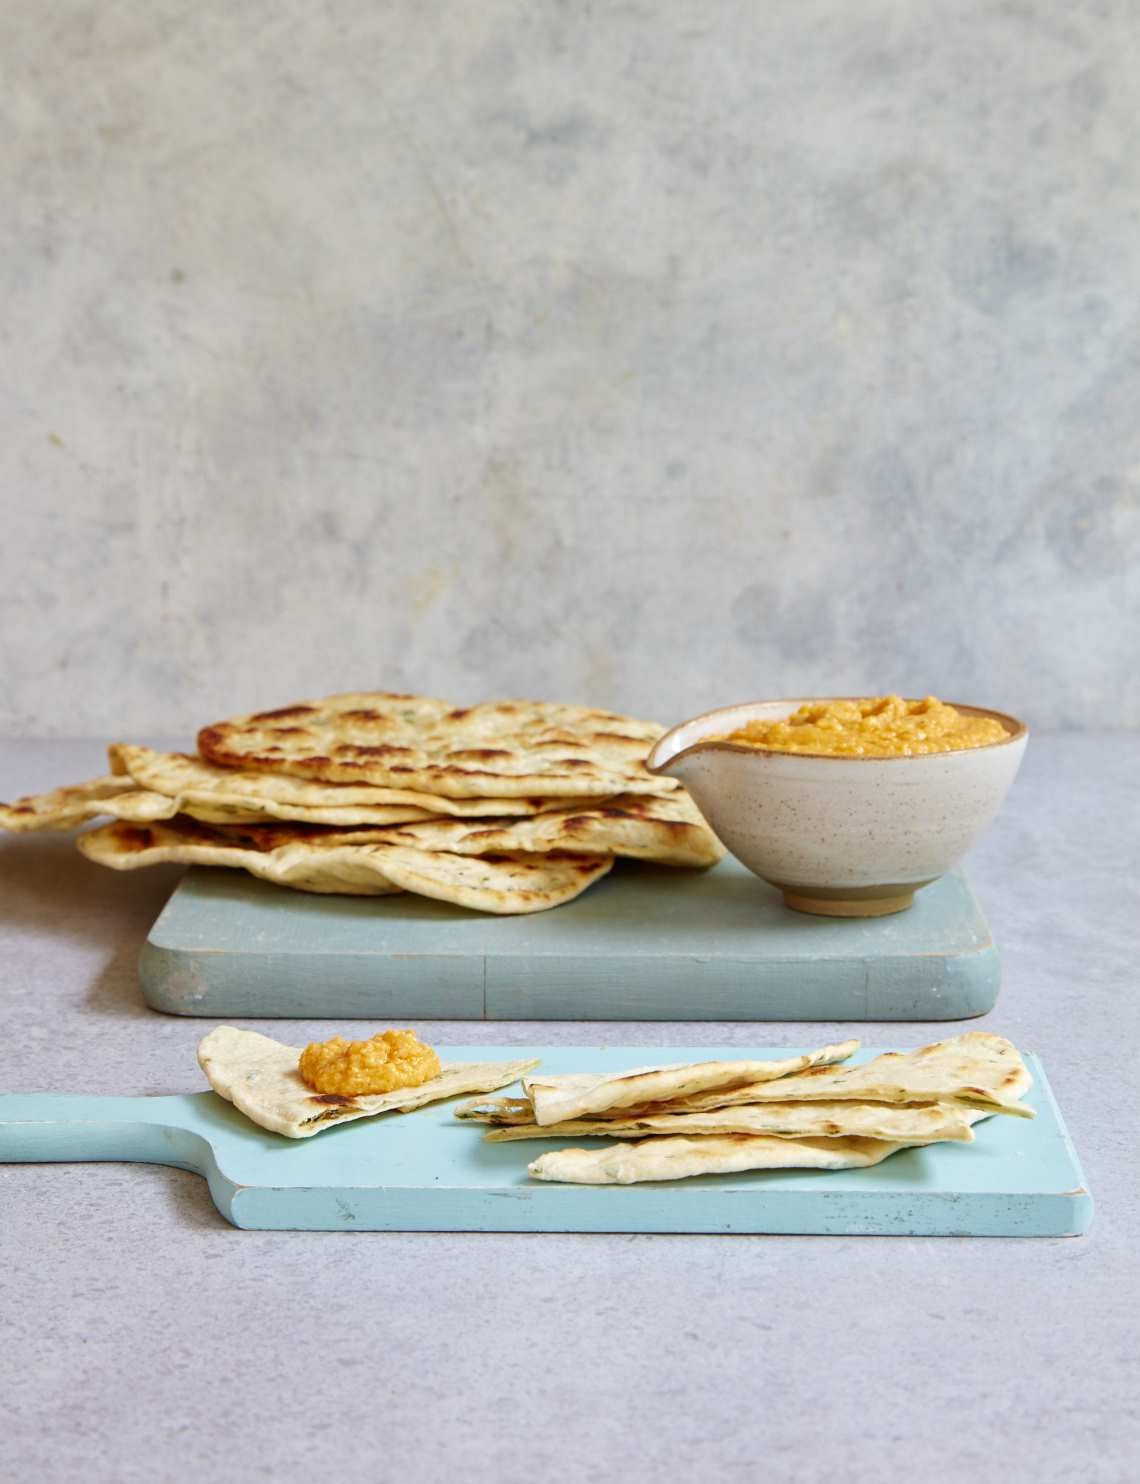 2018_09_05_MB_Quick_flatbreads_hummus_42882